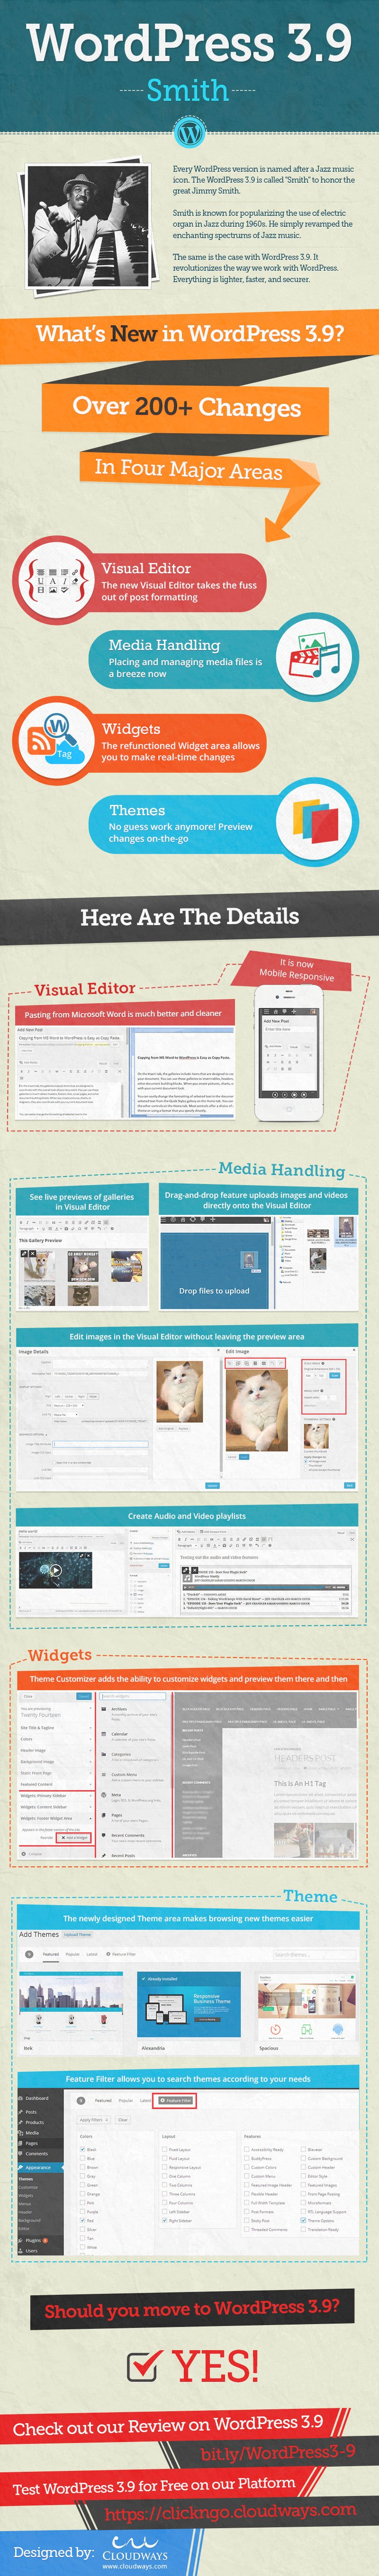 WordPress 3.9 infographic